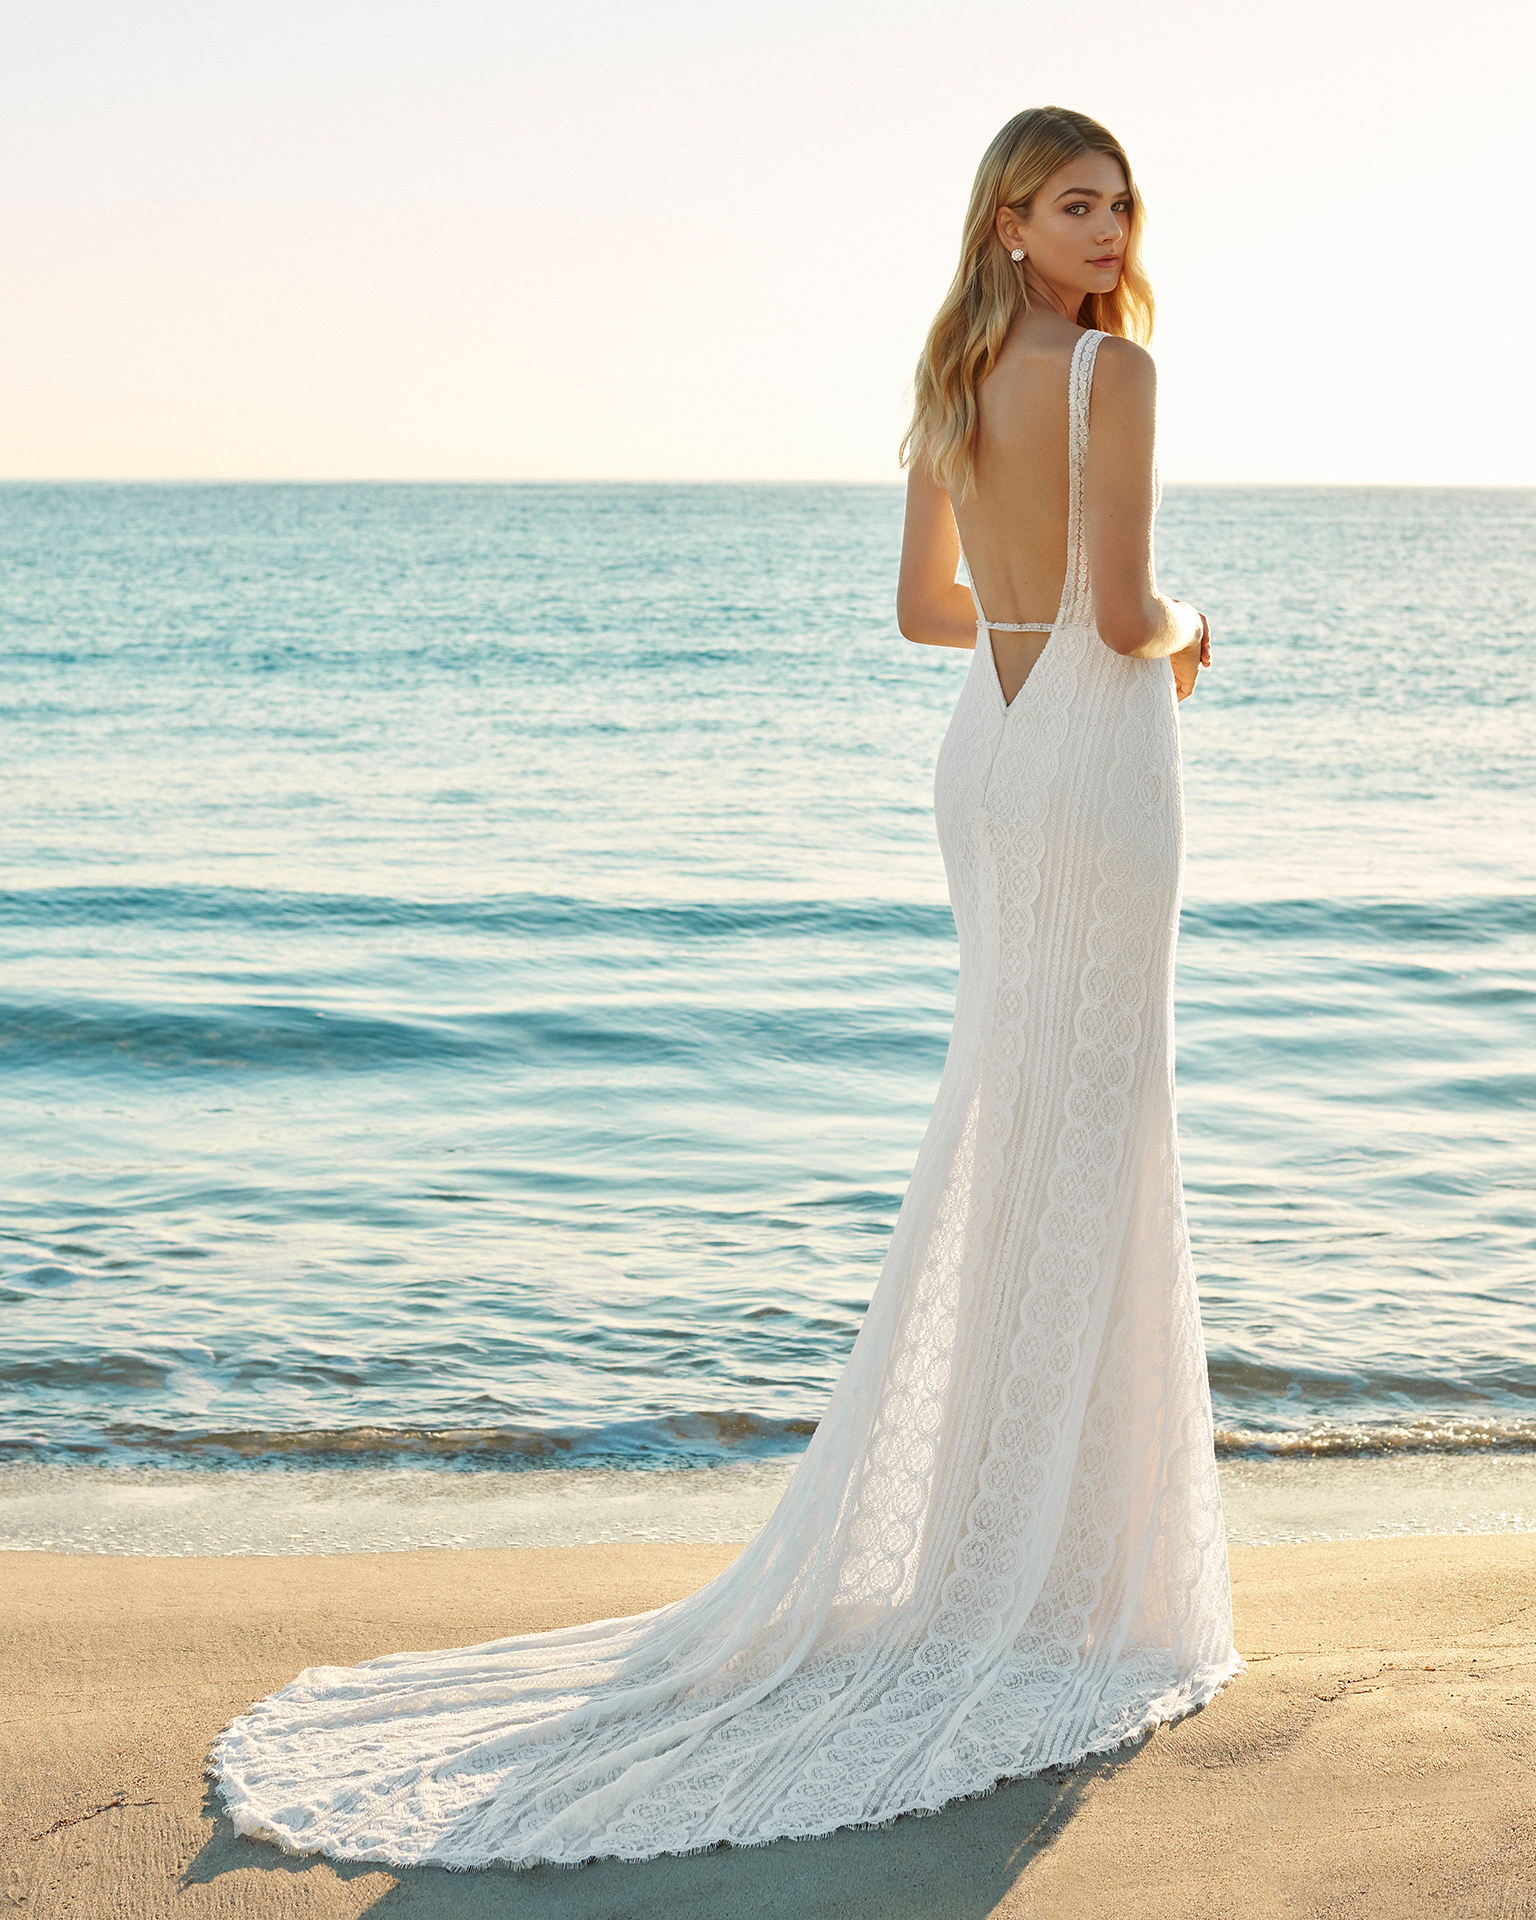 2019_GAURA_AIRE_BEACH_WEDDING_22